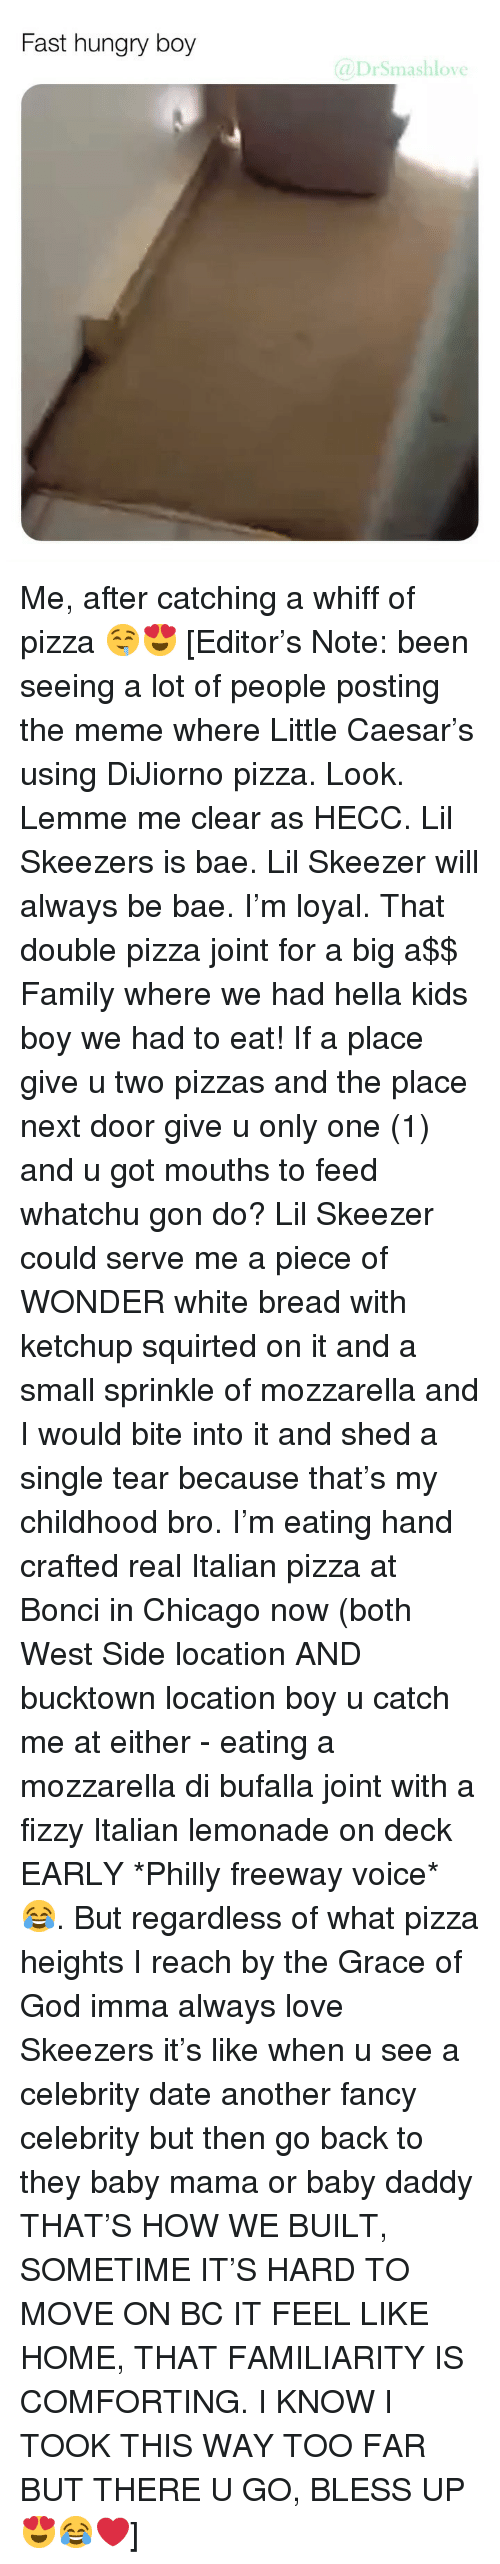 Baby Daddy, Bae, and Bless Up: Fast hungry boy  @DrSmashlove Me, after catching a whiff of pizza 🤤😍 [Editor's Note: been seeing a lot of people posting the meme where Little Caesar's using DiJiorno pizza. Look. Lemme me clear as HECC. Lil Skeezers is bae. Lil Skeezer will always be bae. I'm loyal. That double pizza joint for a big a$$ Family where we had hella kids boy we had to eat! If a place give u two pizzas and the place next door give u only one (1) and u got mouths to feed whatchu gon do? Lil Skeezer could serve me a piece of WONDER white bread with ketchup squirted on it and a small sprinkle of mozzarella and I would bite into it and shed a single tear because that's my childhood bro. I'm eating hand crafted real Italian pizza at Bonci in Chicago now (both West Side location AND bucktown location boy u catch me at either - eating a mozzarella di bufalla joint with a fizzy Italian lemonade on deck EARLY *Philly freeway voice* 😂. But regardless of what pizza heights I reach by the Grace of God imma always love Skeezers it's like when u see a celebrity date another fancy celebrity but then go back to they baby mama or baby daddy THAT'S HOW WE BUILT, SOMETIME IT'S HARD TO MOVE ON BC IT FEEL LIKE HOME, THAT FAMILIARITY IS COMFORTING. I KNOW I TOOK THIS WAY TOO FAR BUT THERE U GO, BLESS UP 😍😂❤️]